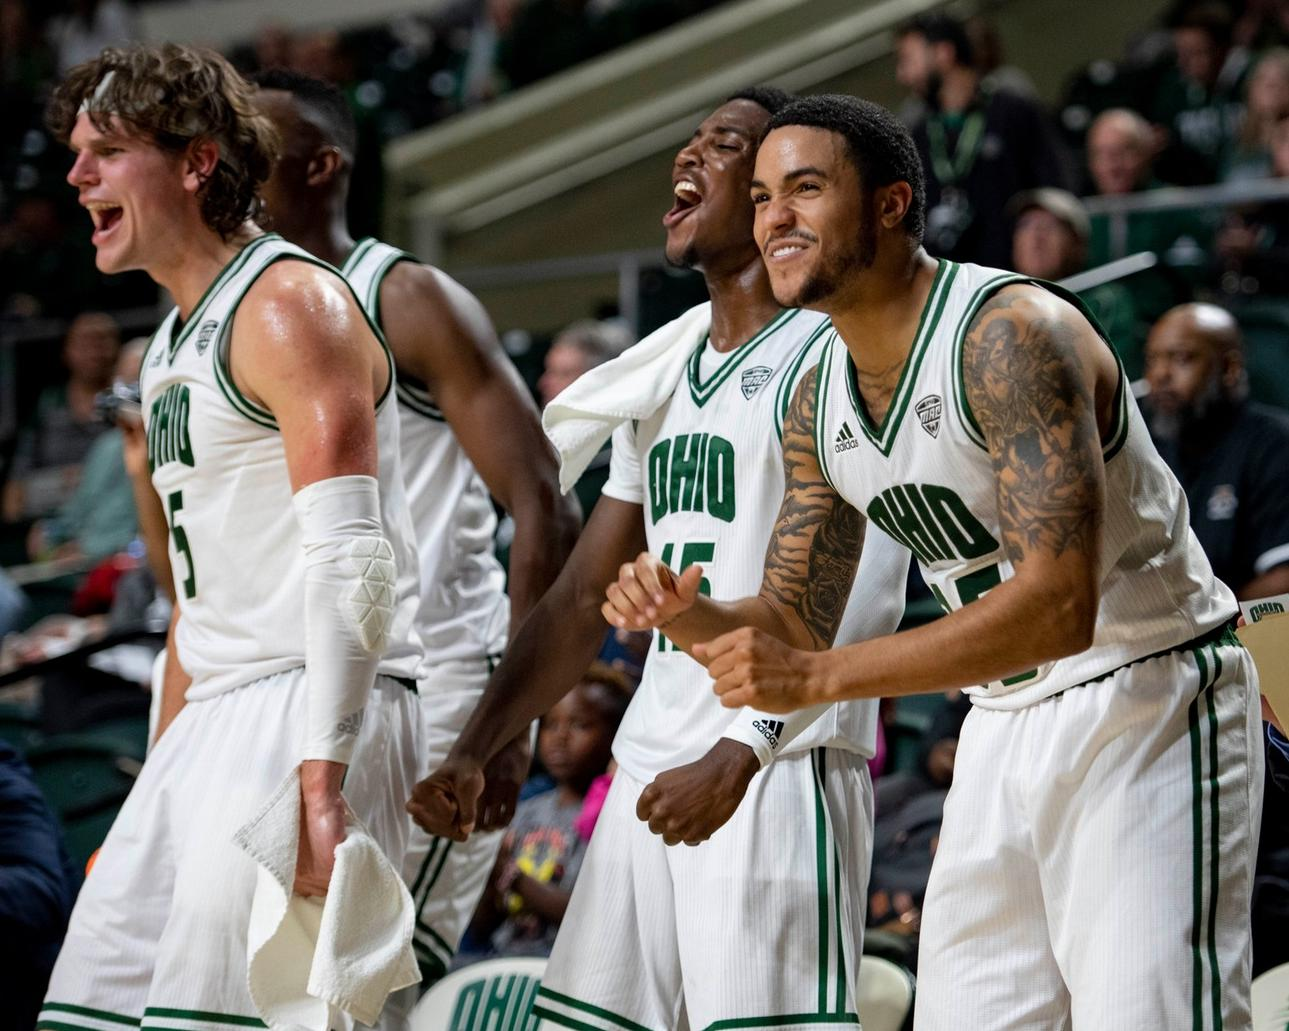 Ohio Men's Basketball Opens 2019 Myrtle Beach Invitational Against No. 24 Baylor